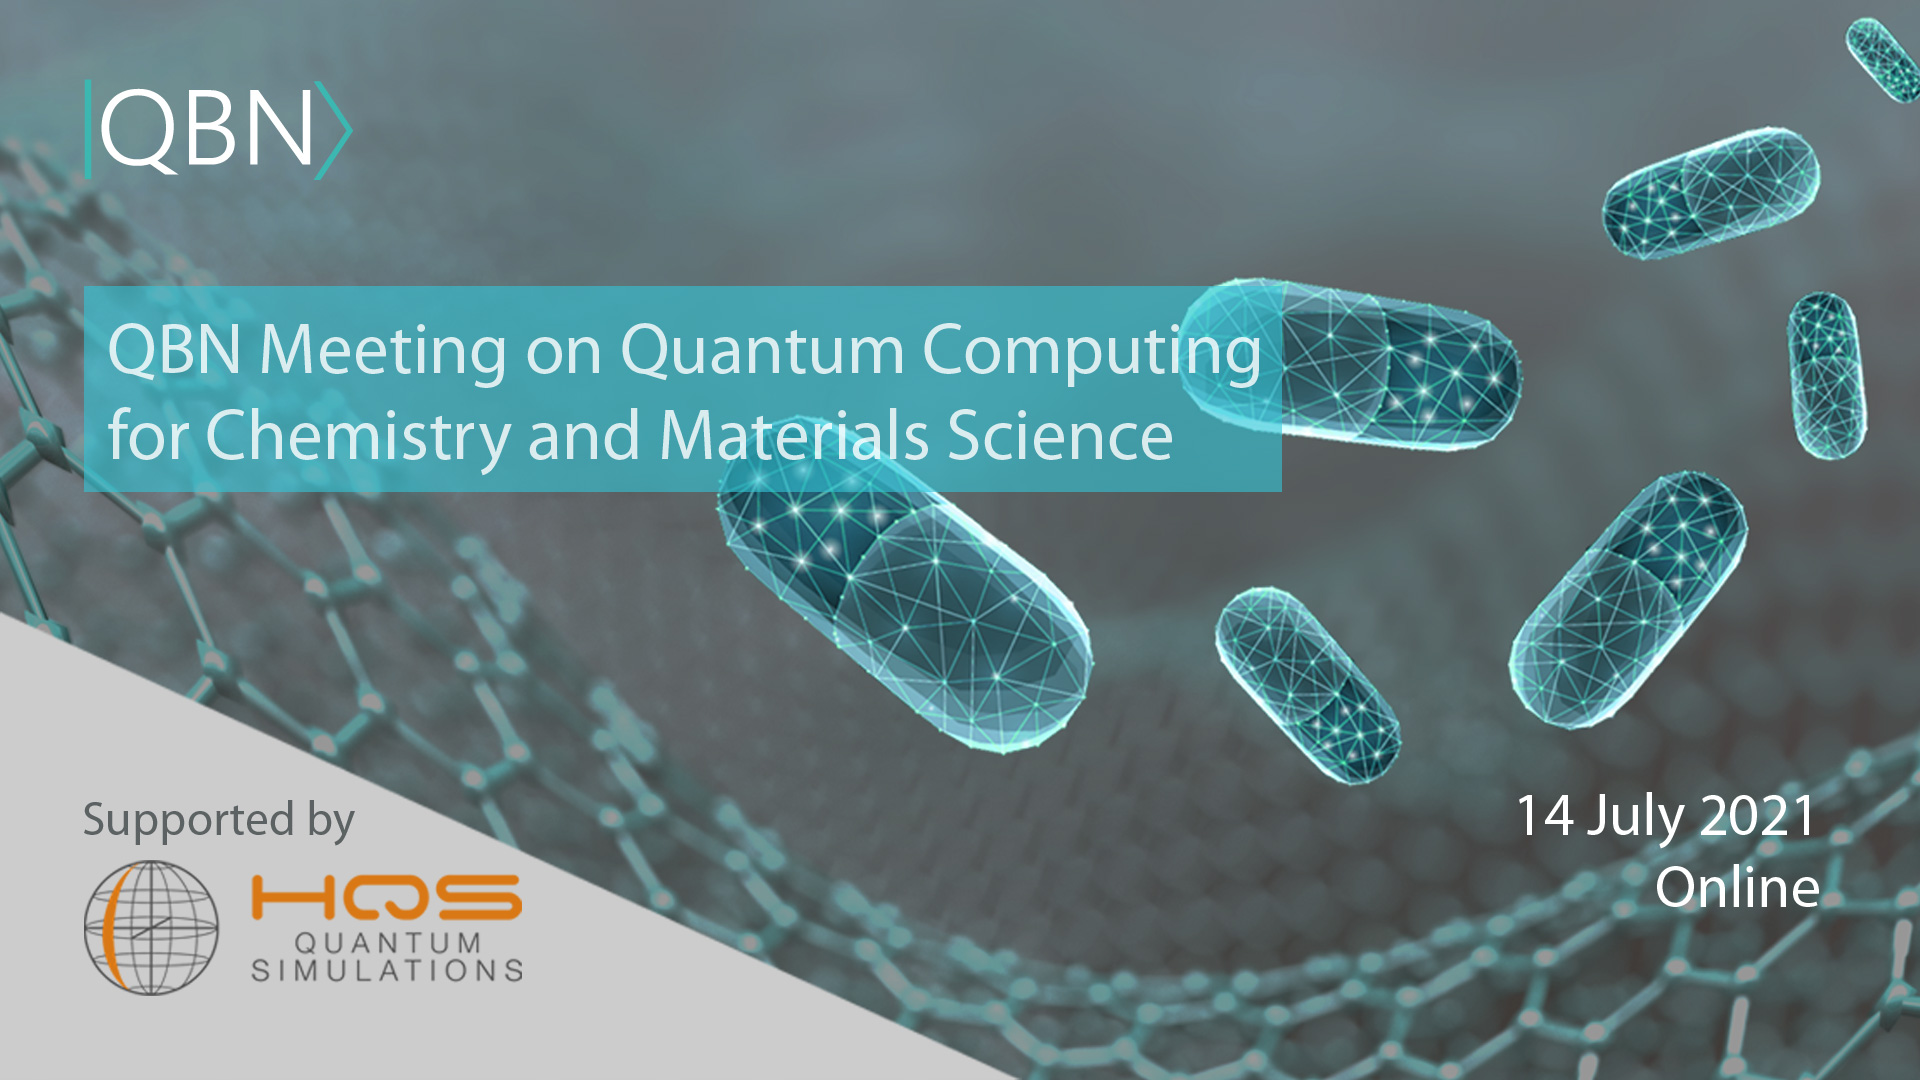 QBN Meeting on Quantum Computing for Chemistry and Materials Science